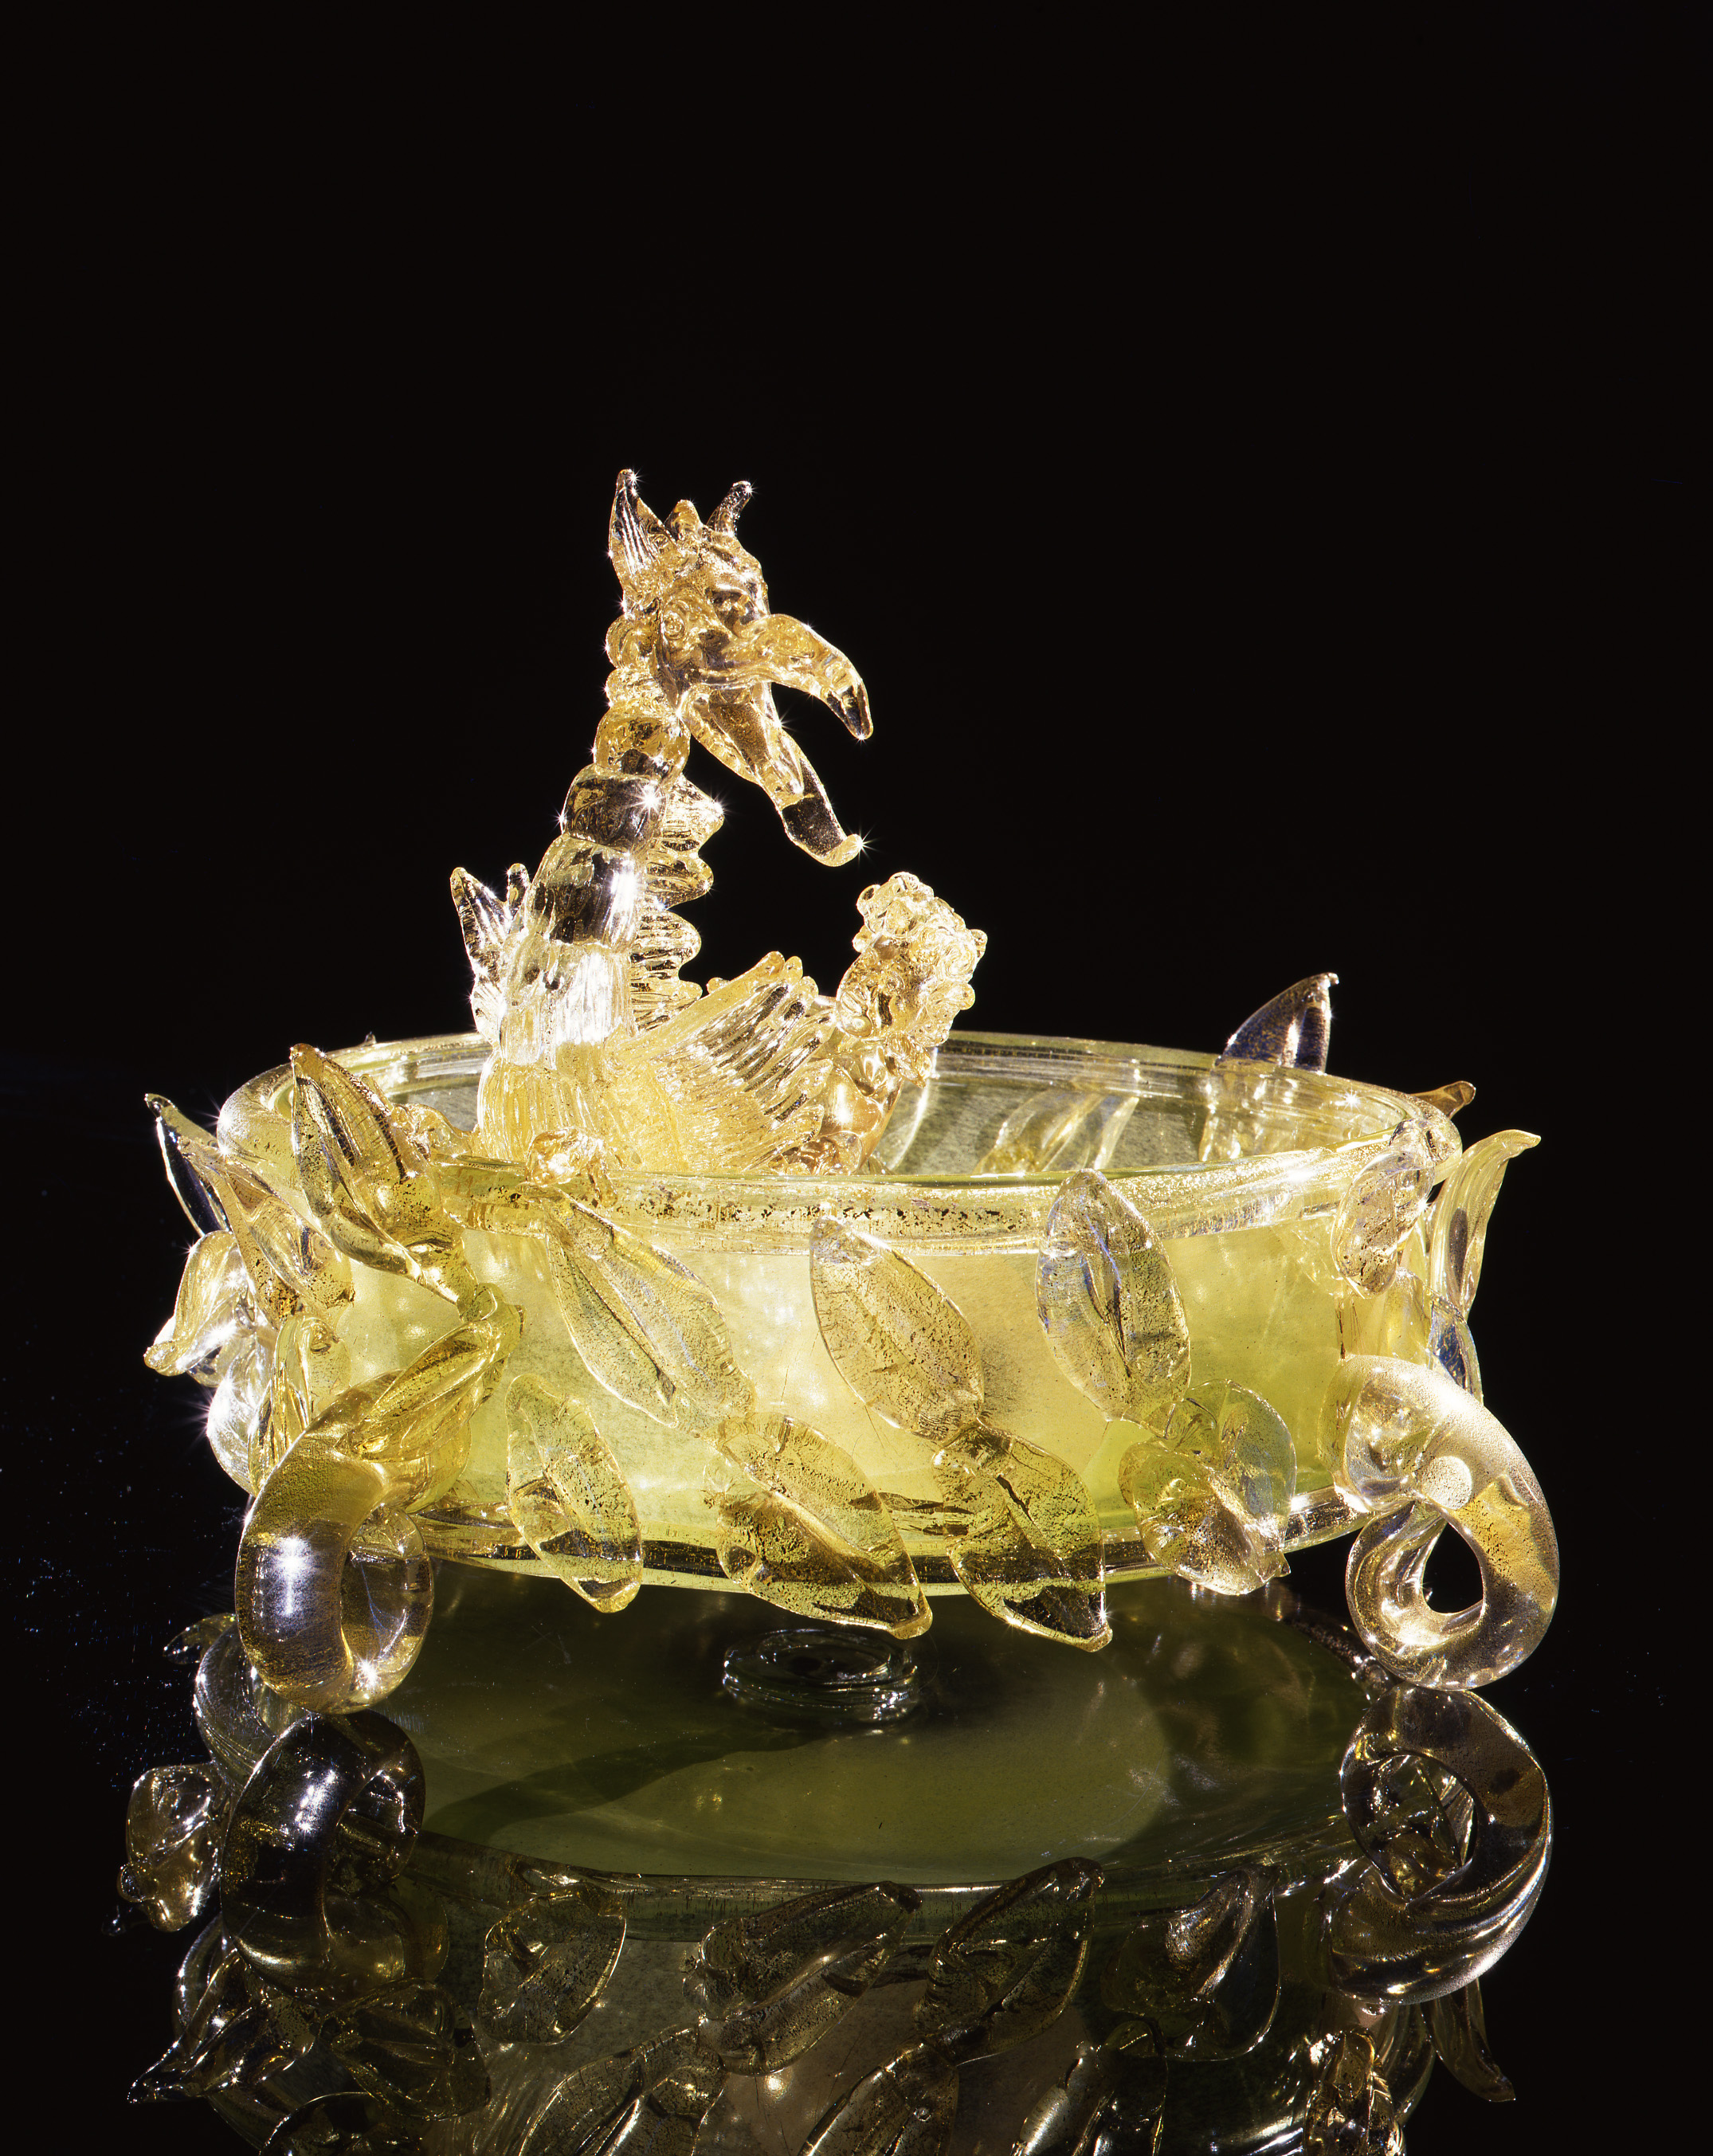 Dale Chihuly,  Gold over Fountain Green Putti Venetian with Leaves and Dragon  (1994, glass, 13 x 18 x 18 inches)